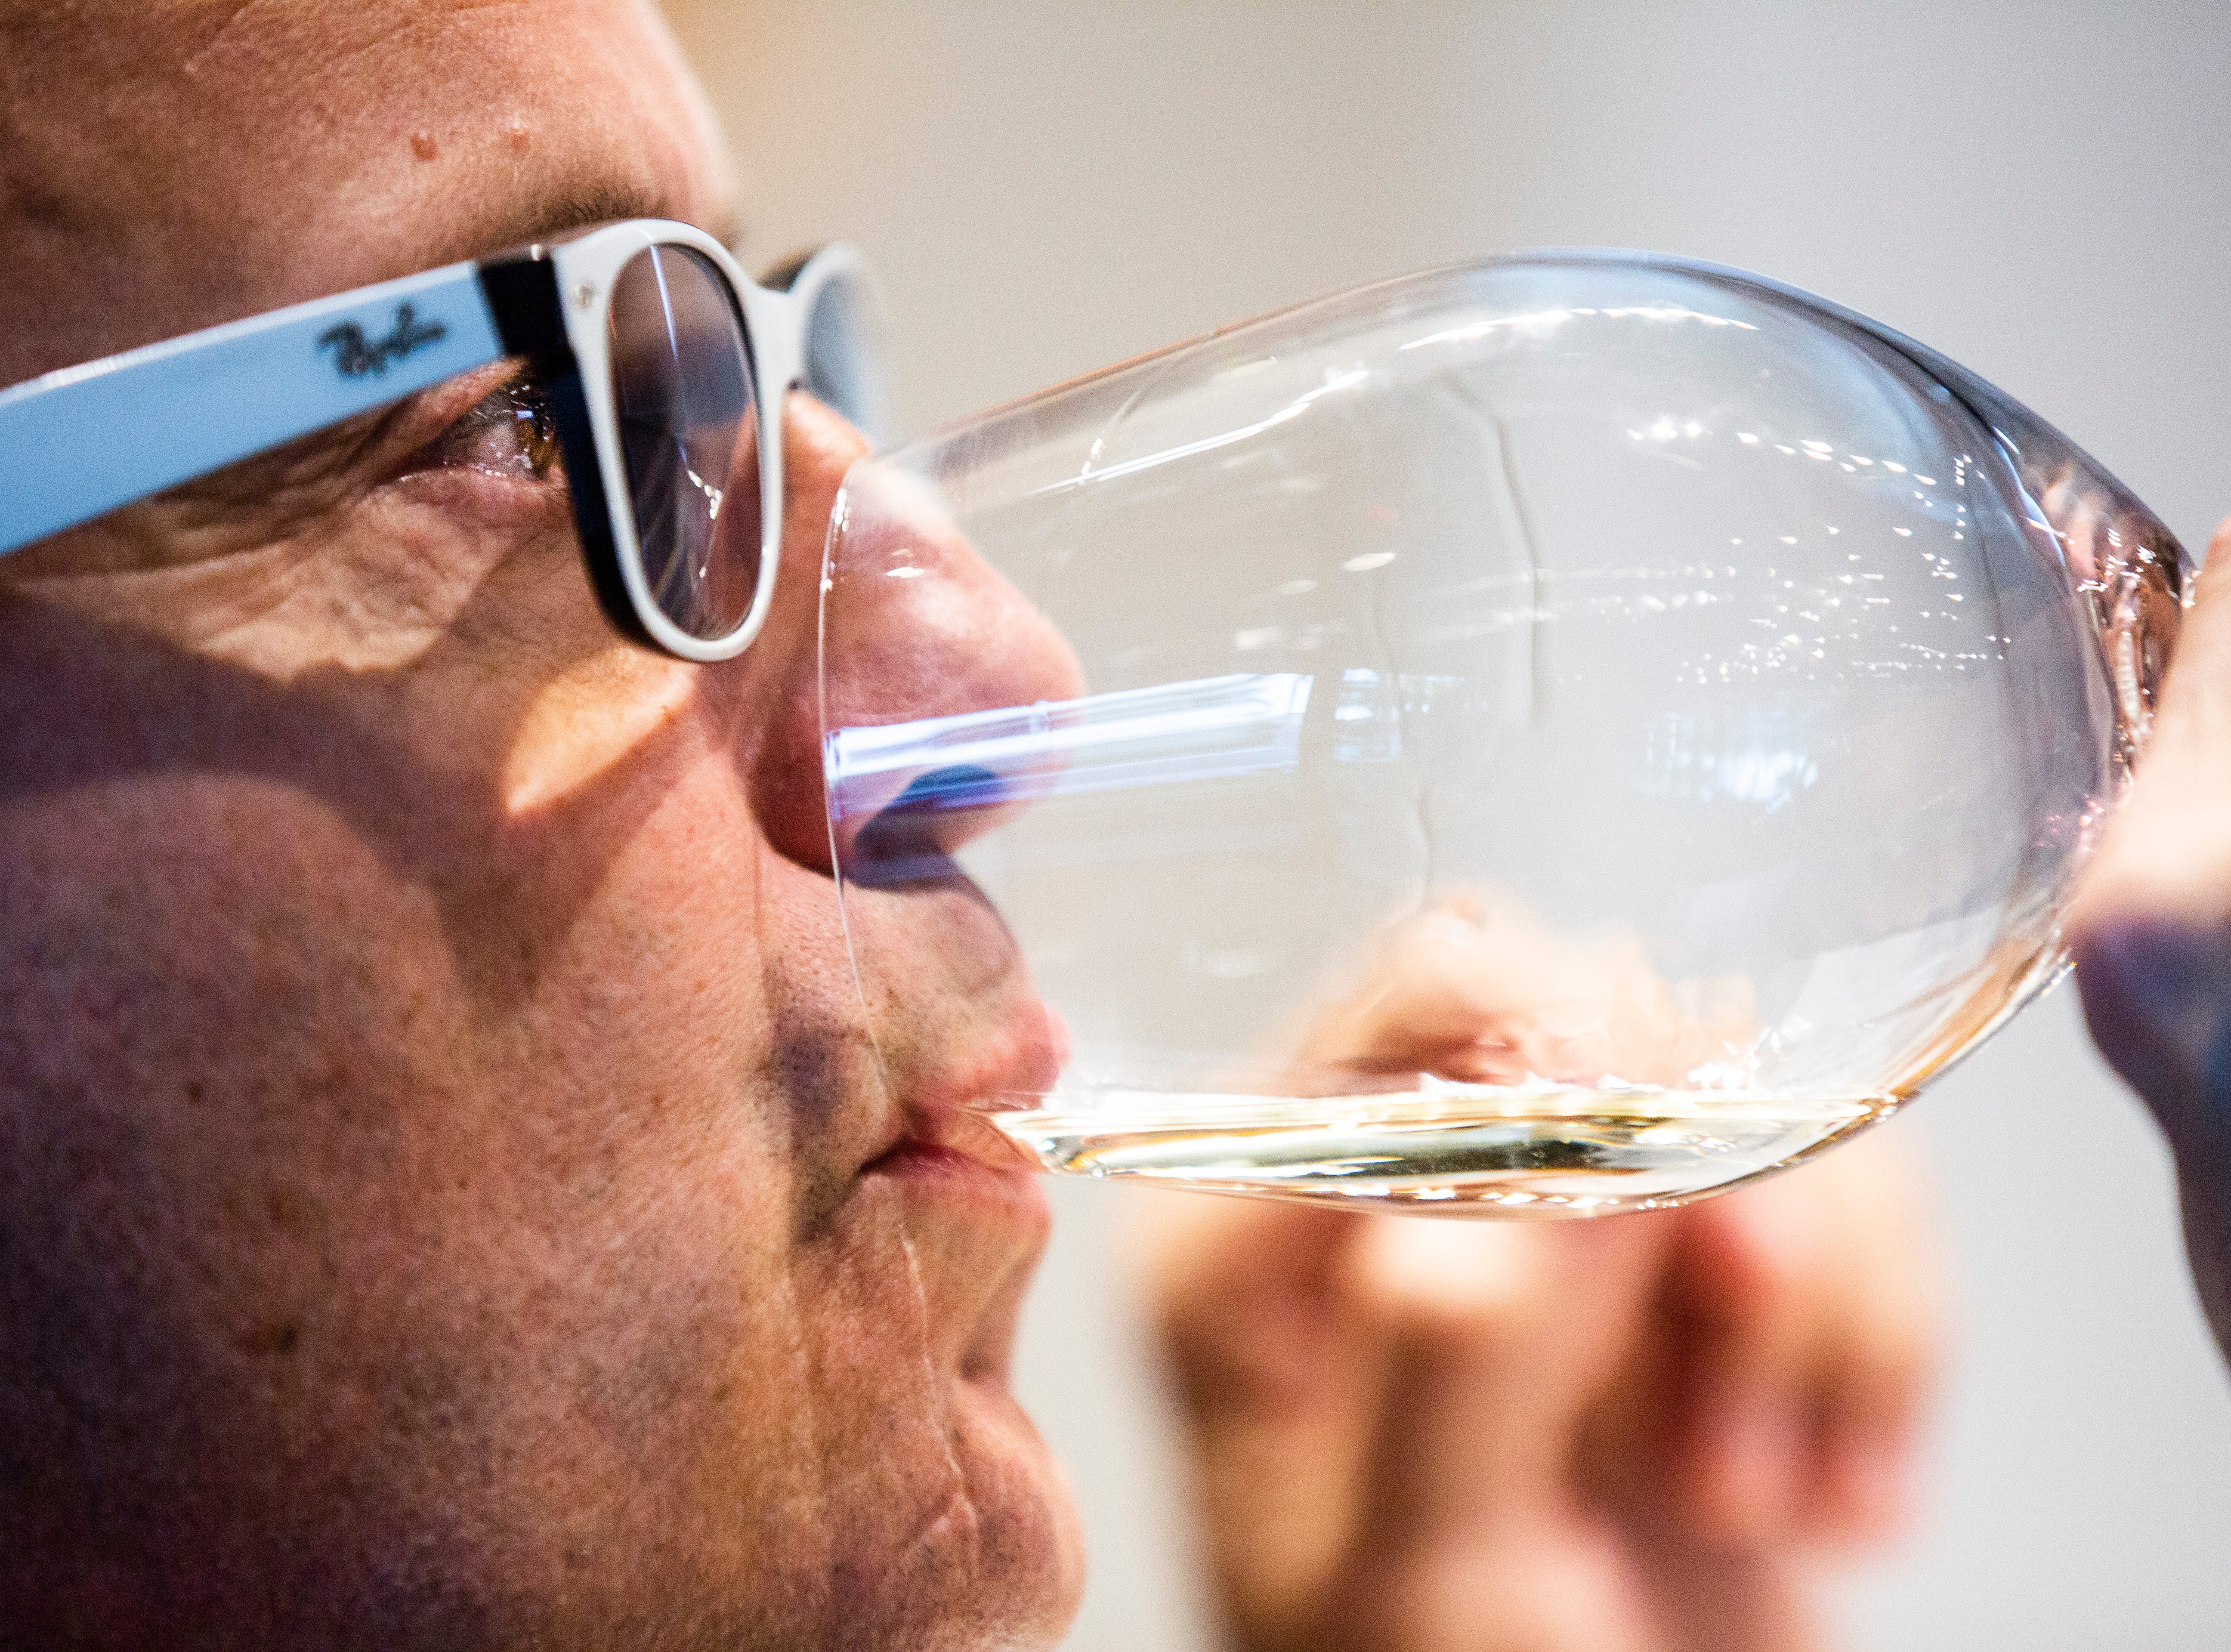 Eric Blais, the wine director and certified sommelier at USS Nemo, tastes a white wine during the Somms Showdown, organized by Break Thru Beverage Group, at The Cave Bistro & Wine Bar in Naples on Tuesday, Nov. 13, 2018.